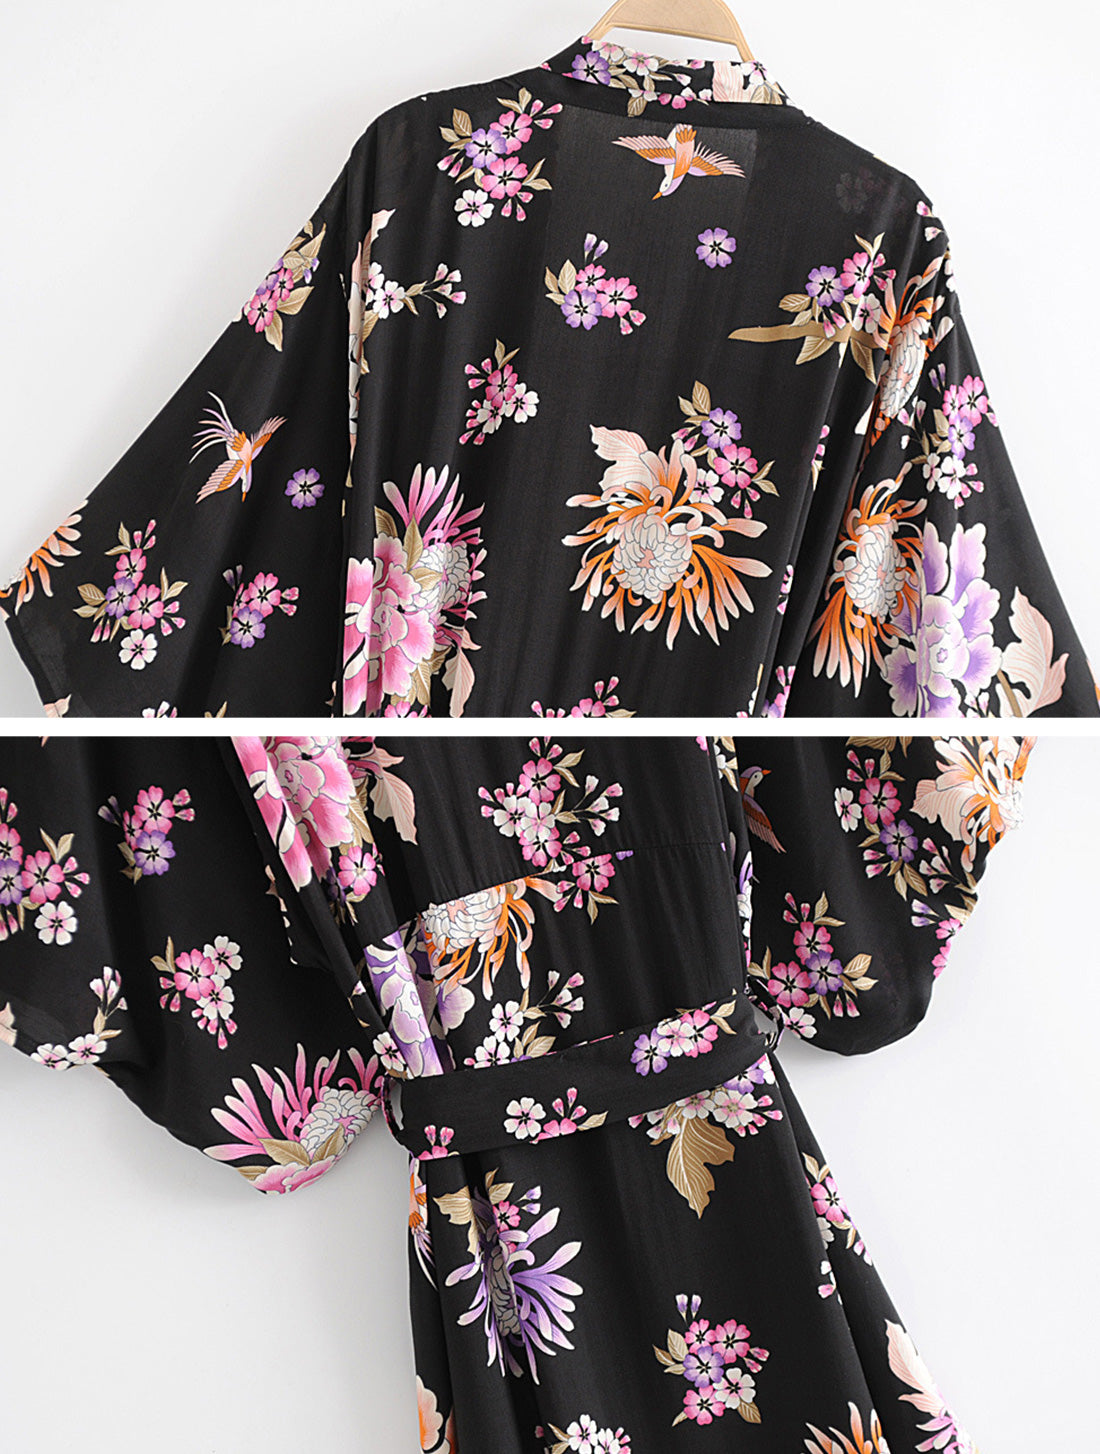 Simple As Can Kimono Robe Details 4